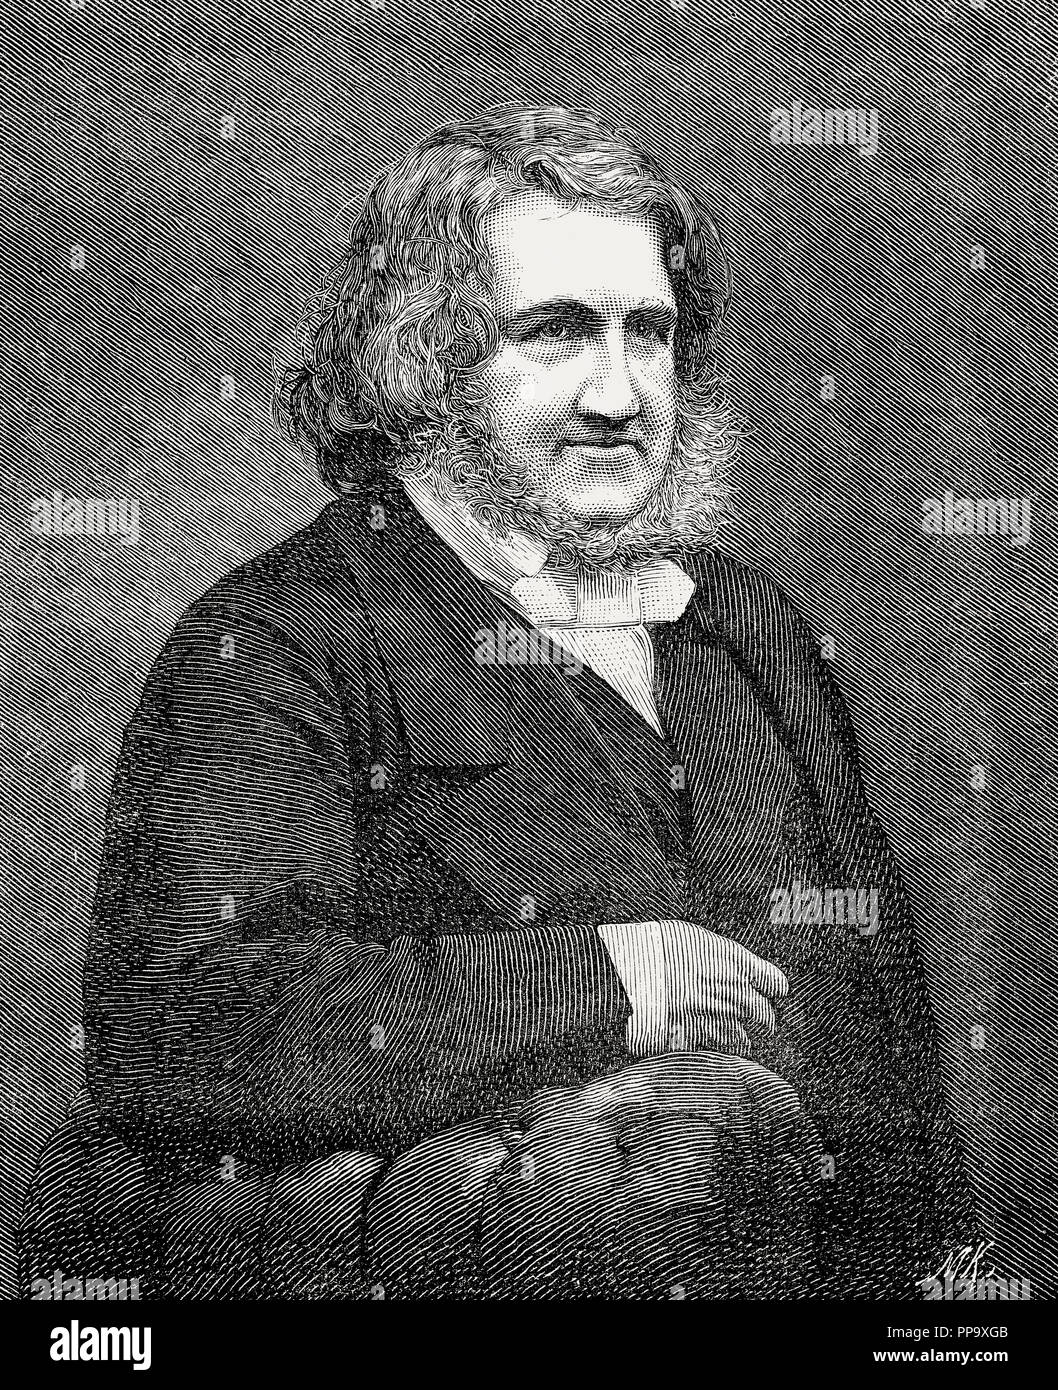 Sir James Young Simpson, 1st Baronet, 1811 – 1870, a Scottish obstetrician and physician - Stock Image